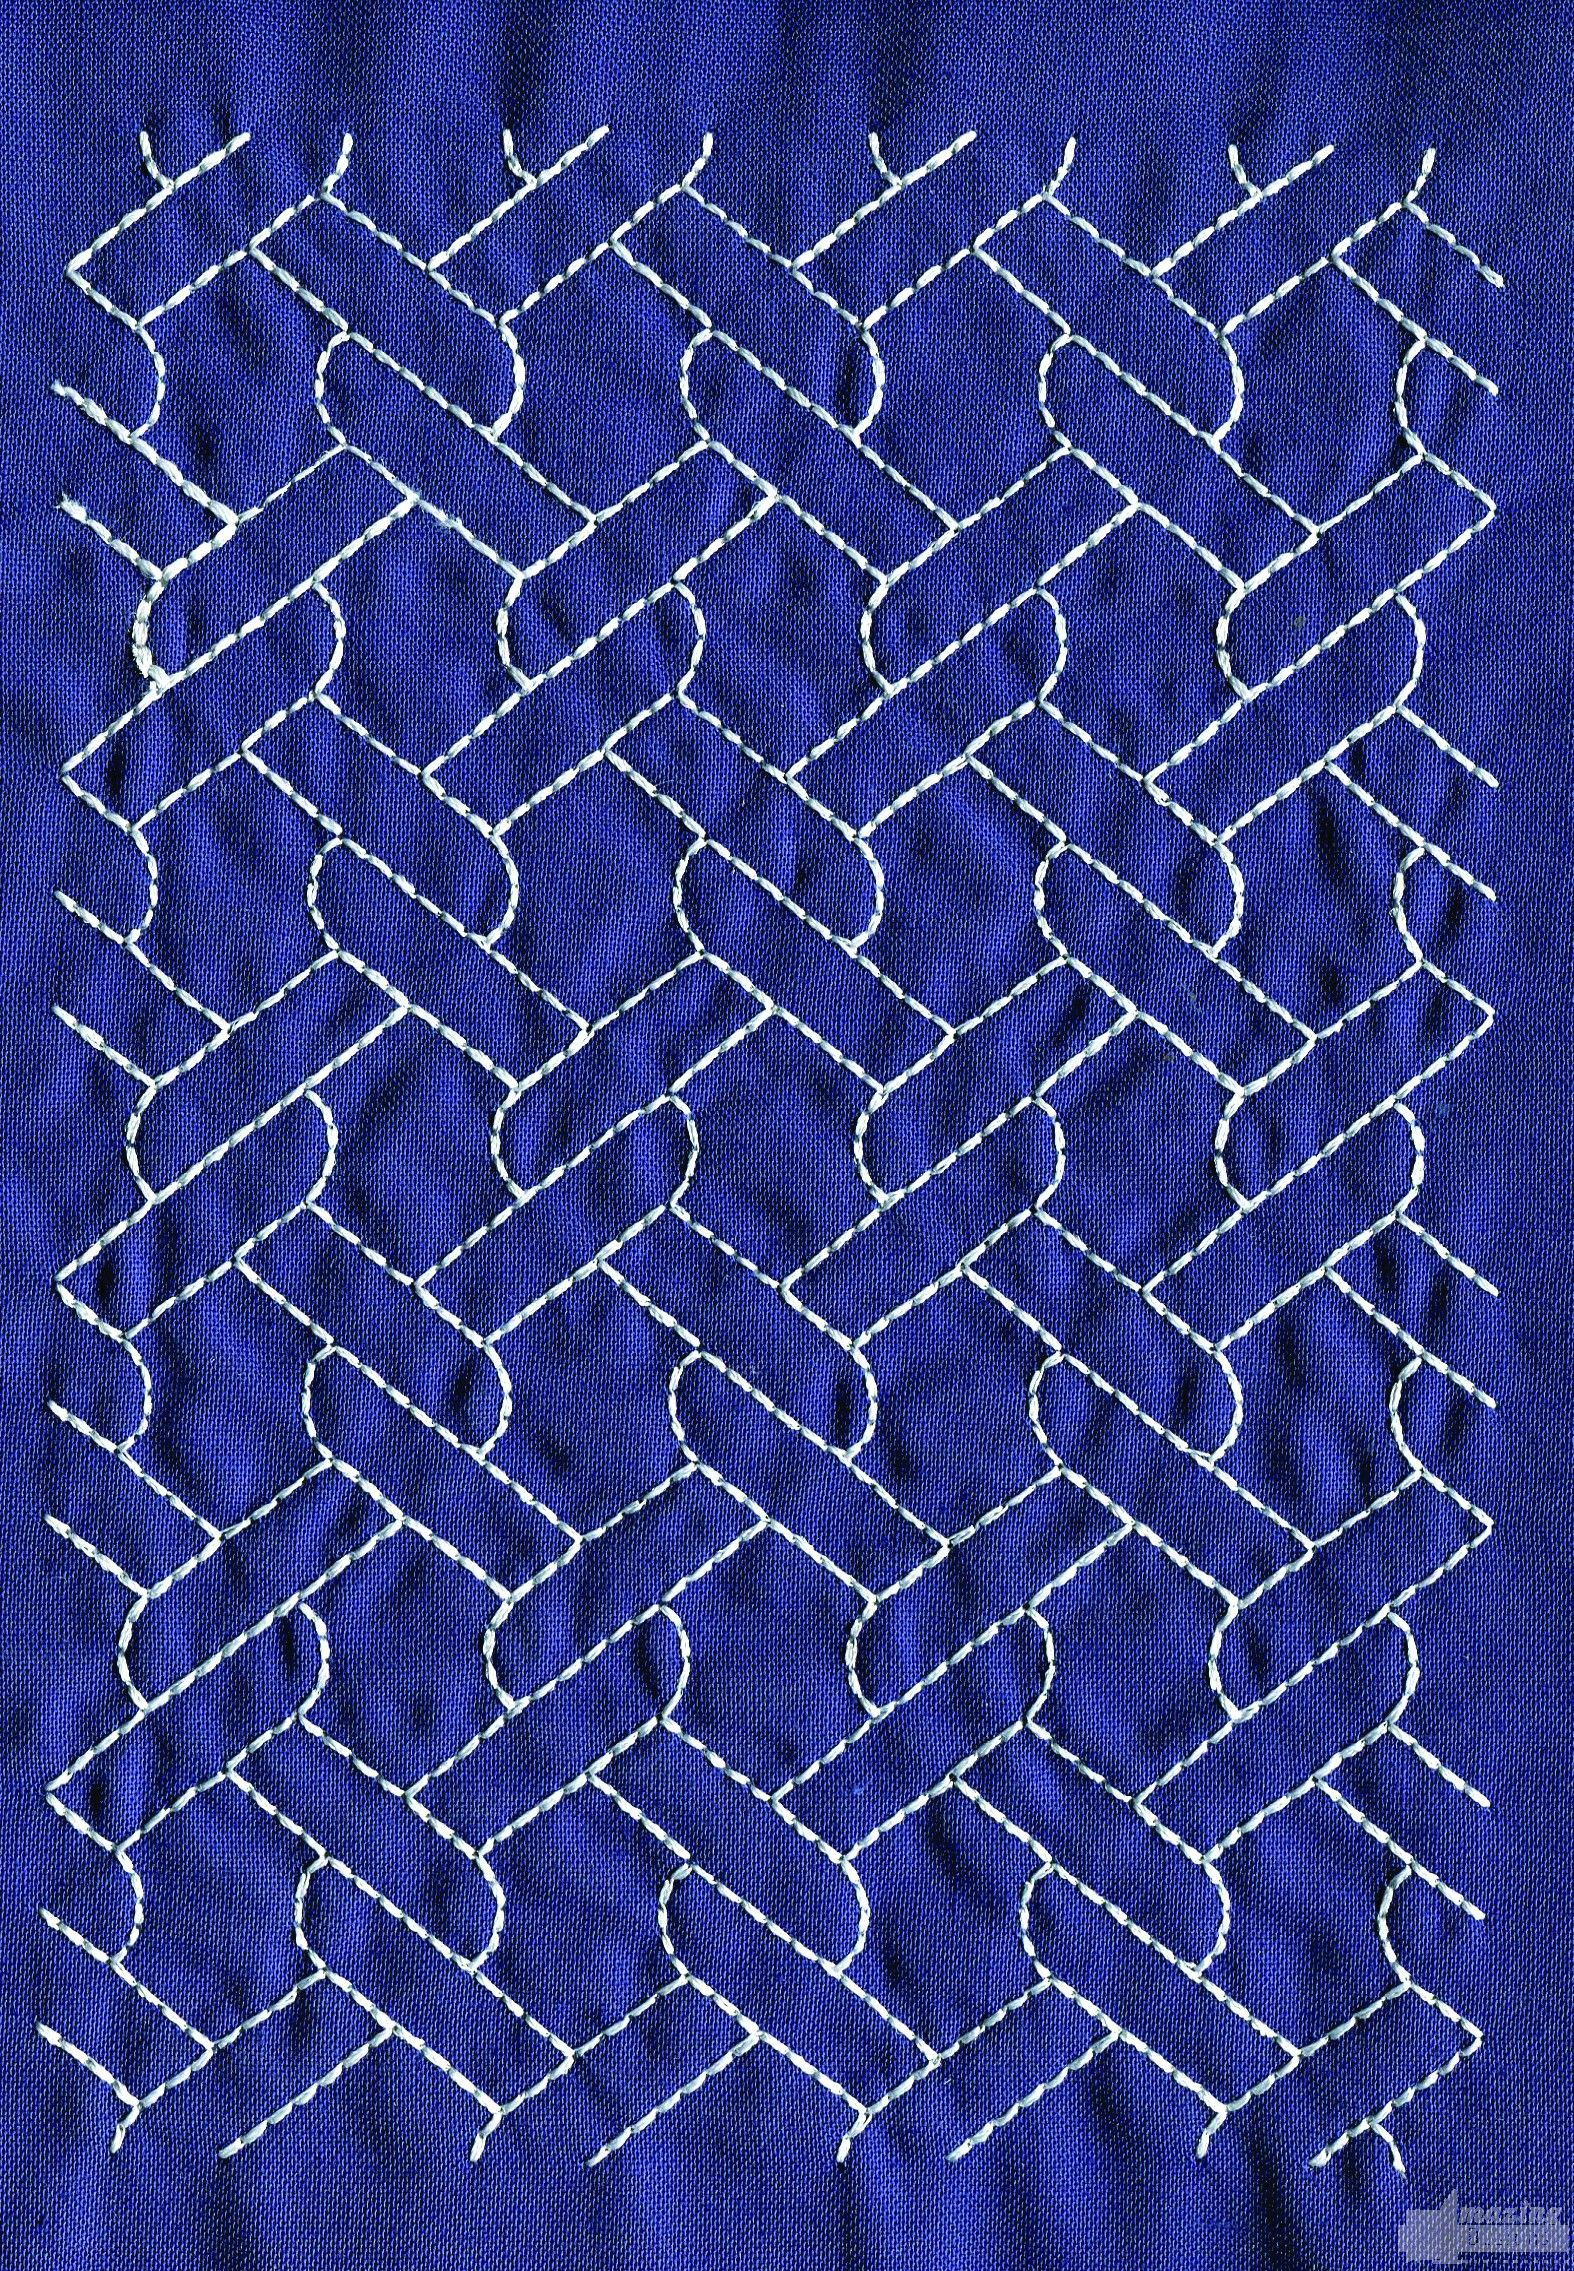 Sashiko Patterns Unique Decorating Design